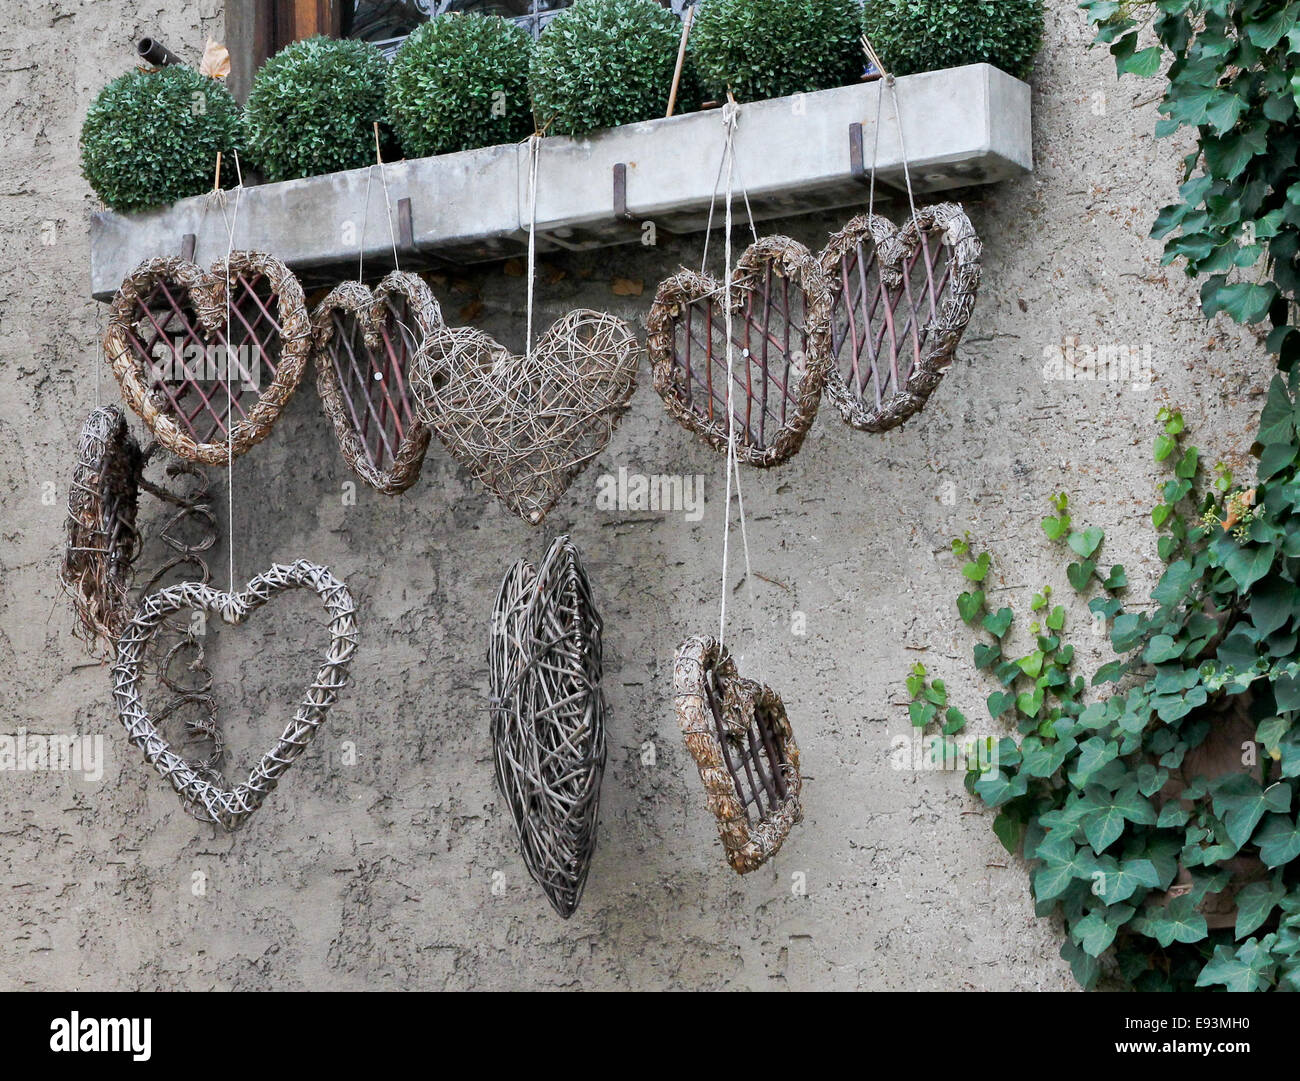 Woven Hearts, Hanging from a window Box - Stock Image